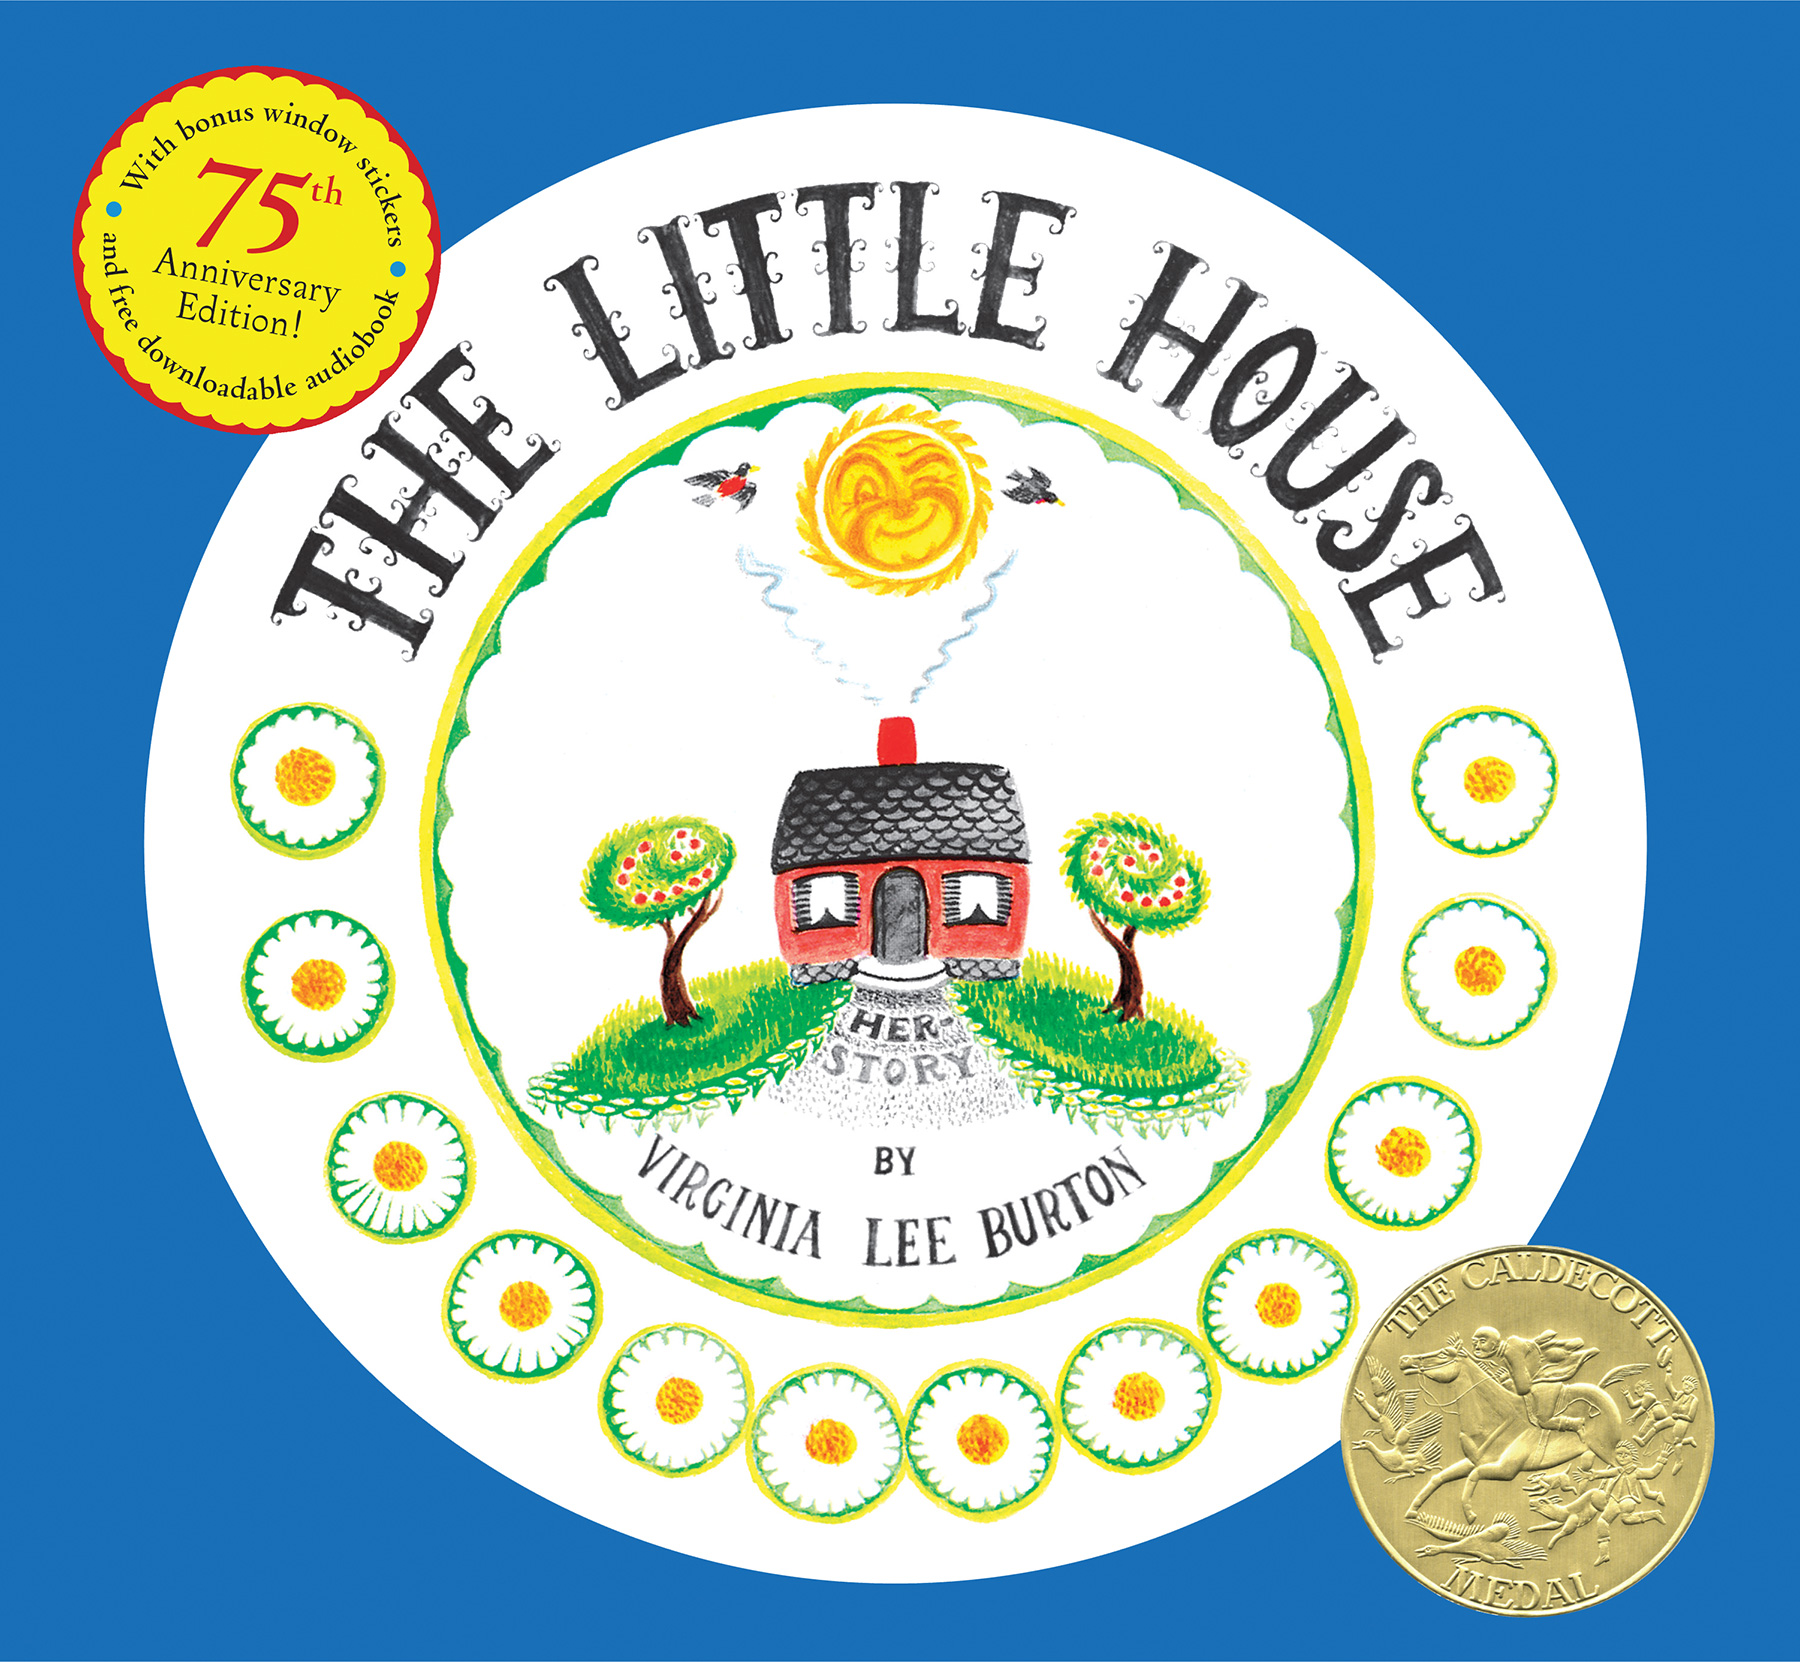 Little-House-75th-Anniversary-Edition_Burton_9781328741943_hres.jpg